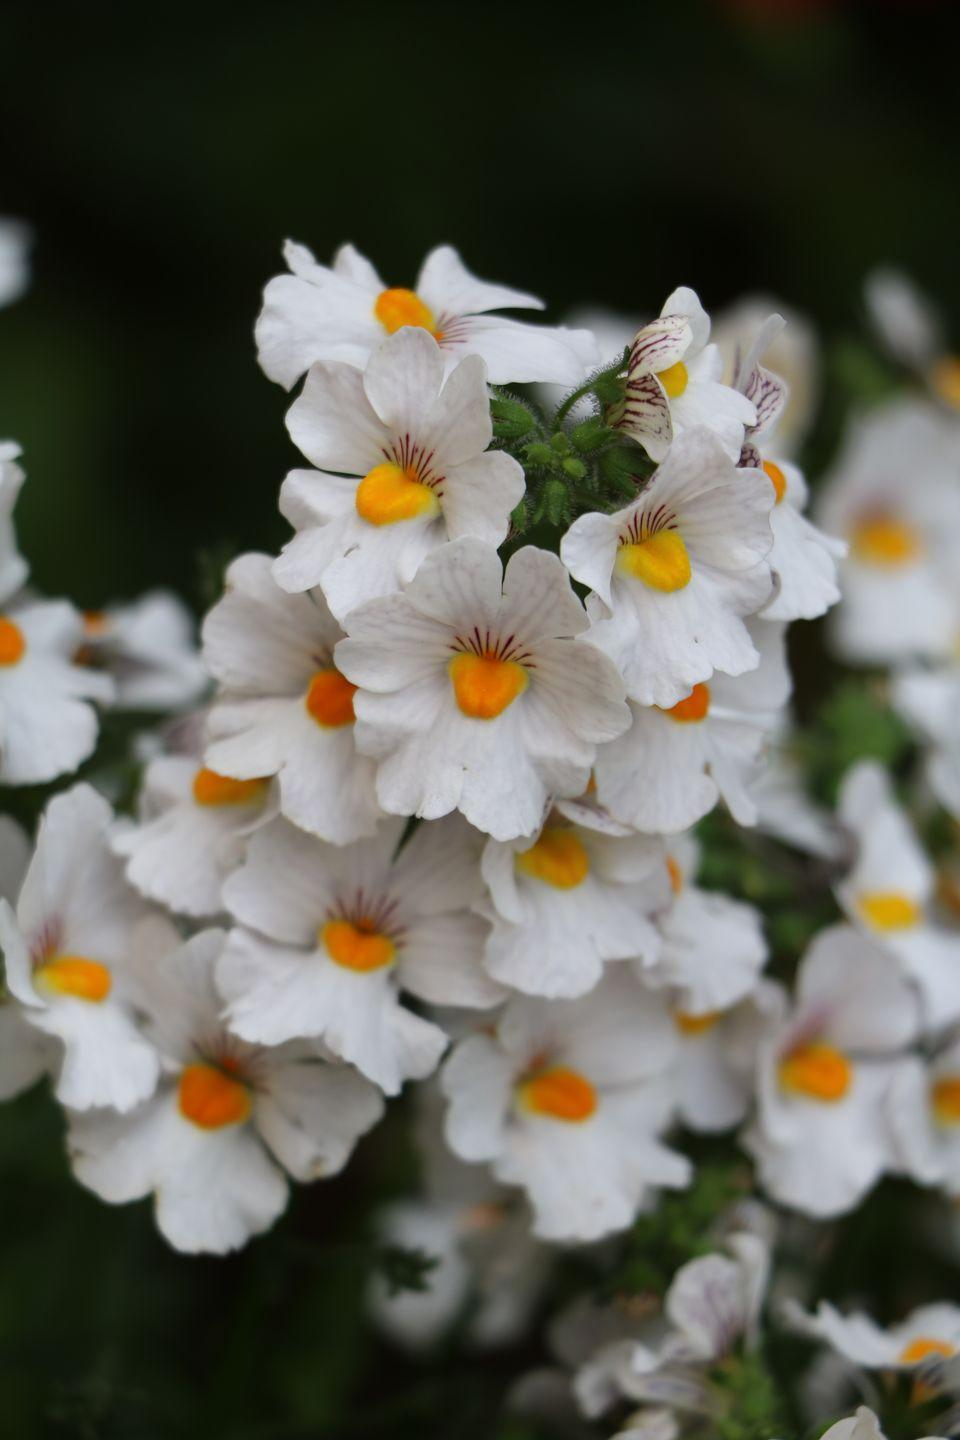 """<p>Tons of teeny flowers that resemble baby snapdragons flourish from spring to fall without deadheading (removing spent blooms). This annual tends to do better in pots, though it will tolerate well-drained soils in the garden or in raised beds. Nemesia likes part sun, but does okay in full sun in cooler climates.</p><p><a class=""""link rapid-noclick-resp"""" href=""""https://www.provenwinners.com/plants/nemesia/sunsatia-coconut-nemesia-hybrid"""" rel=""""nofollow noopener"""" target=""""_blank"""" data-ylk=""""slk:SHOP NEMESIA"""">SHOP NEMESIA</a></p>"""